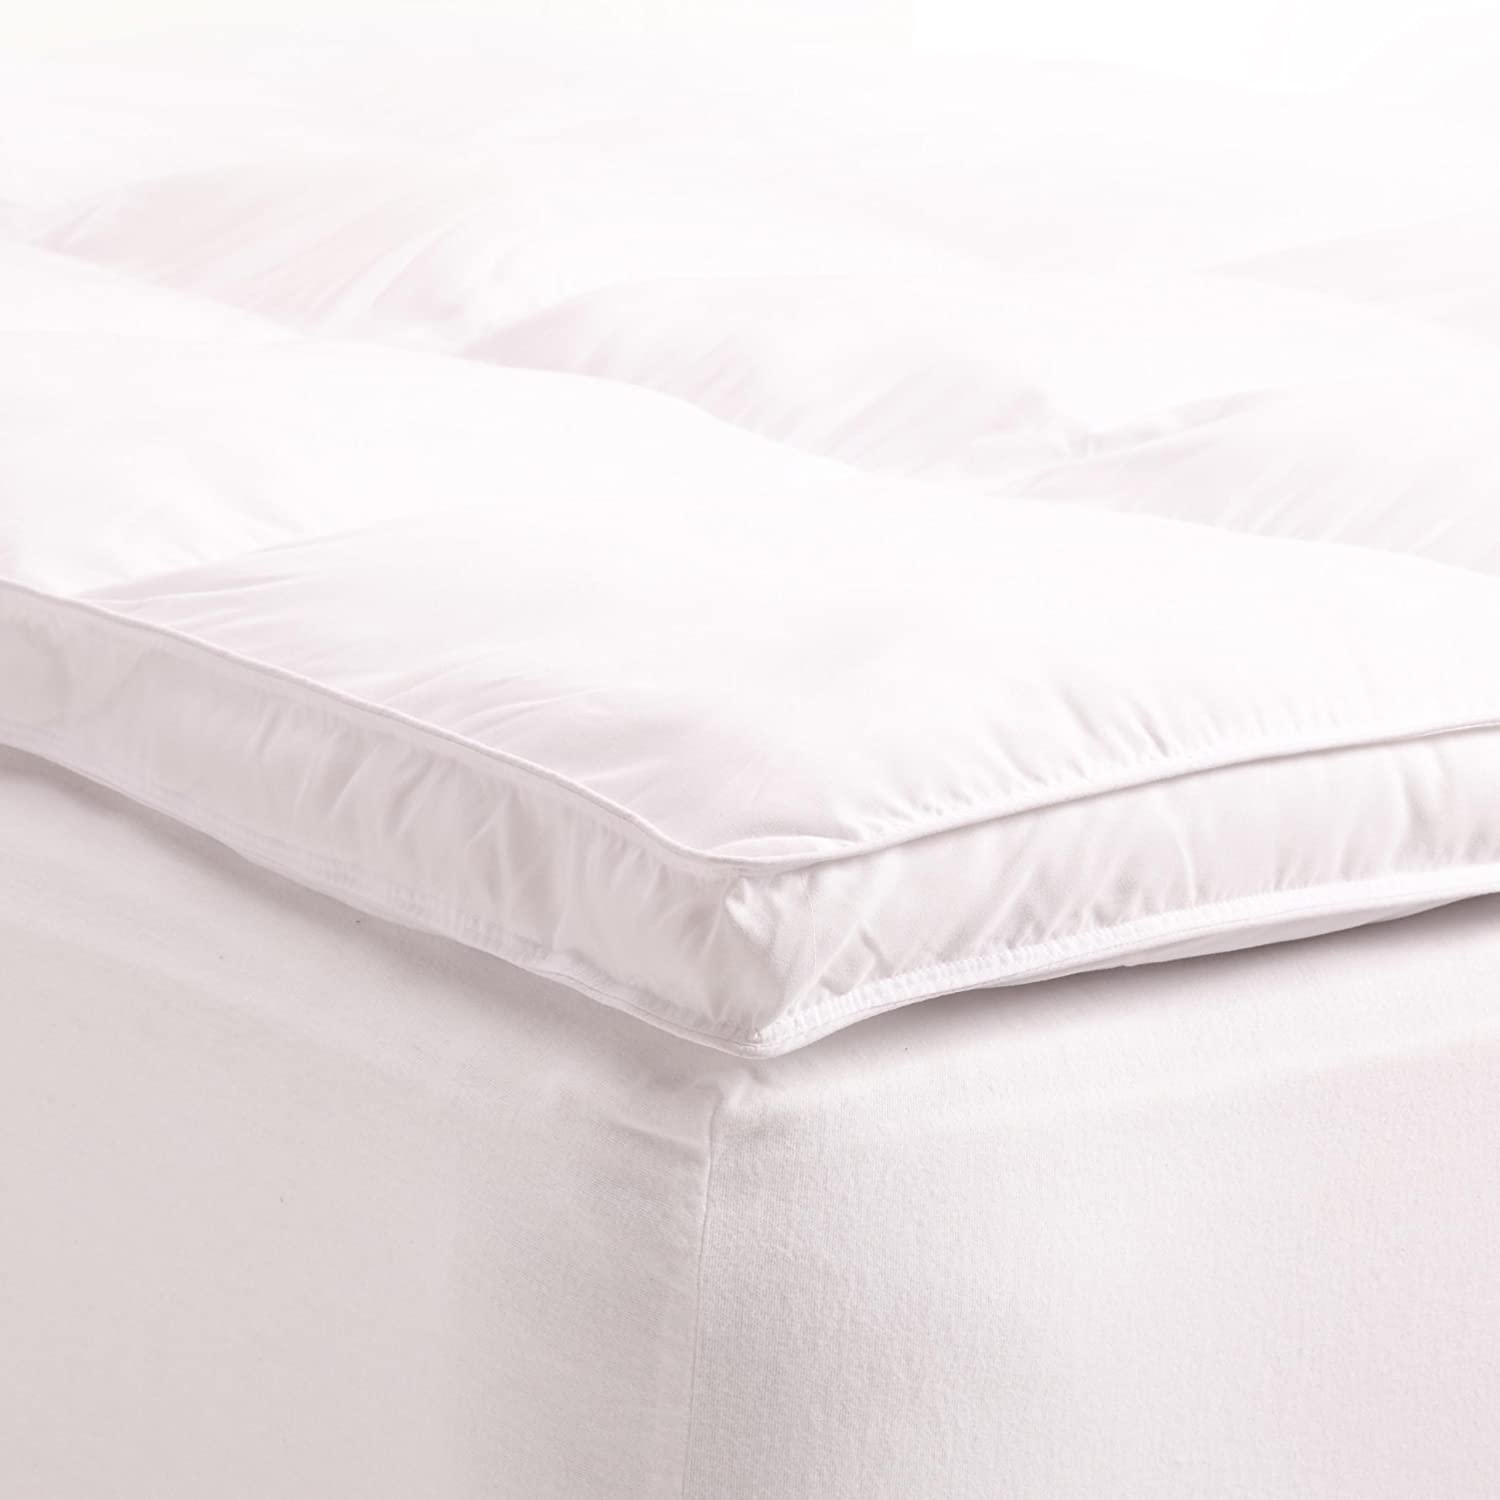 duvets julian quilted pillows topper hotel protectors cluster luxe pillow mattress toppers fibre enhancer